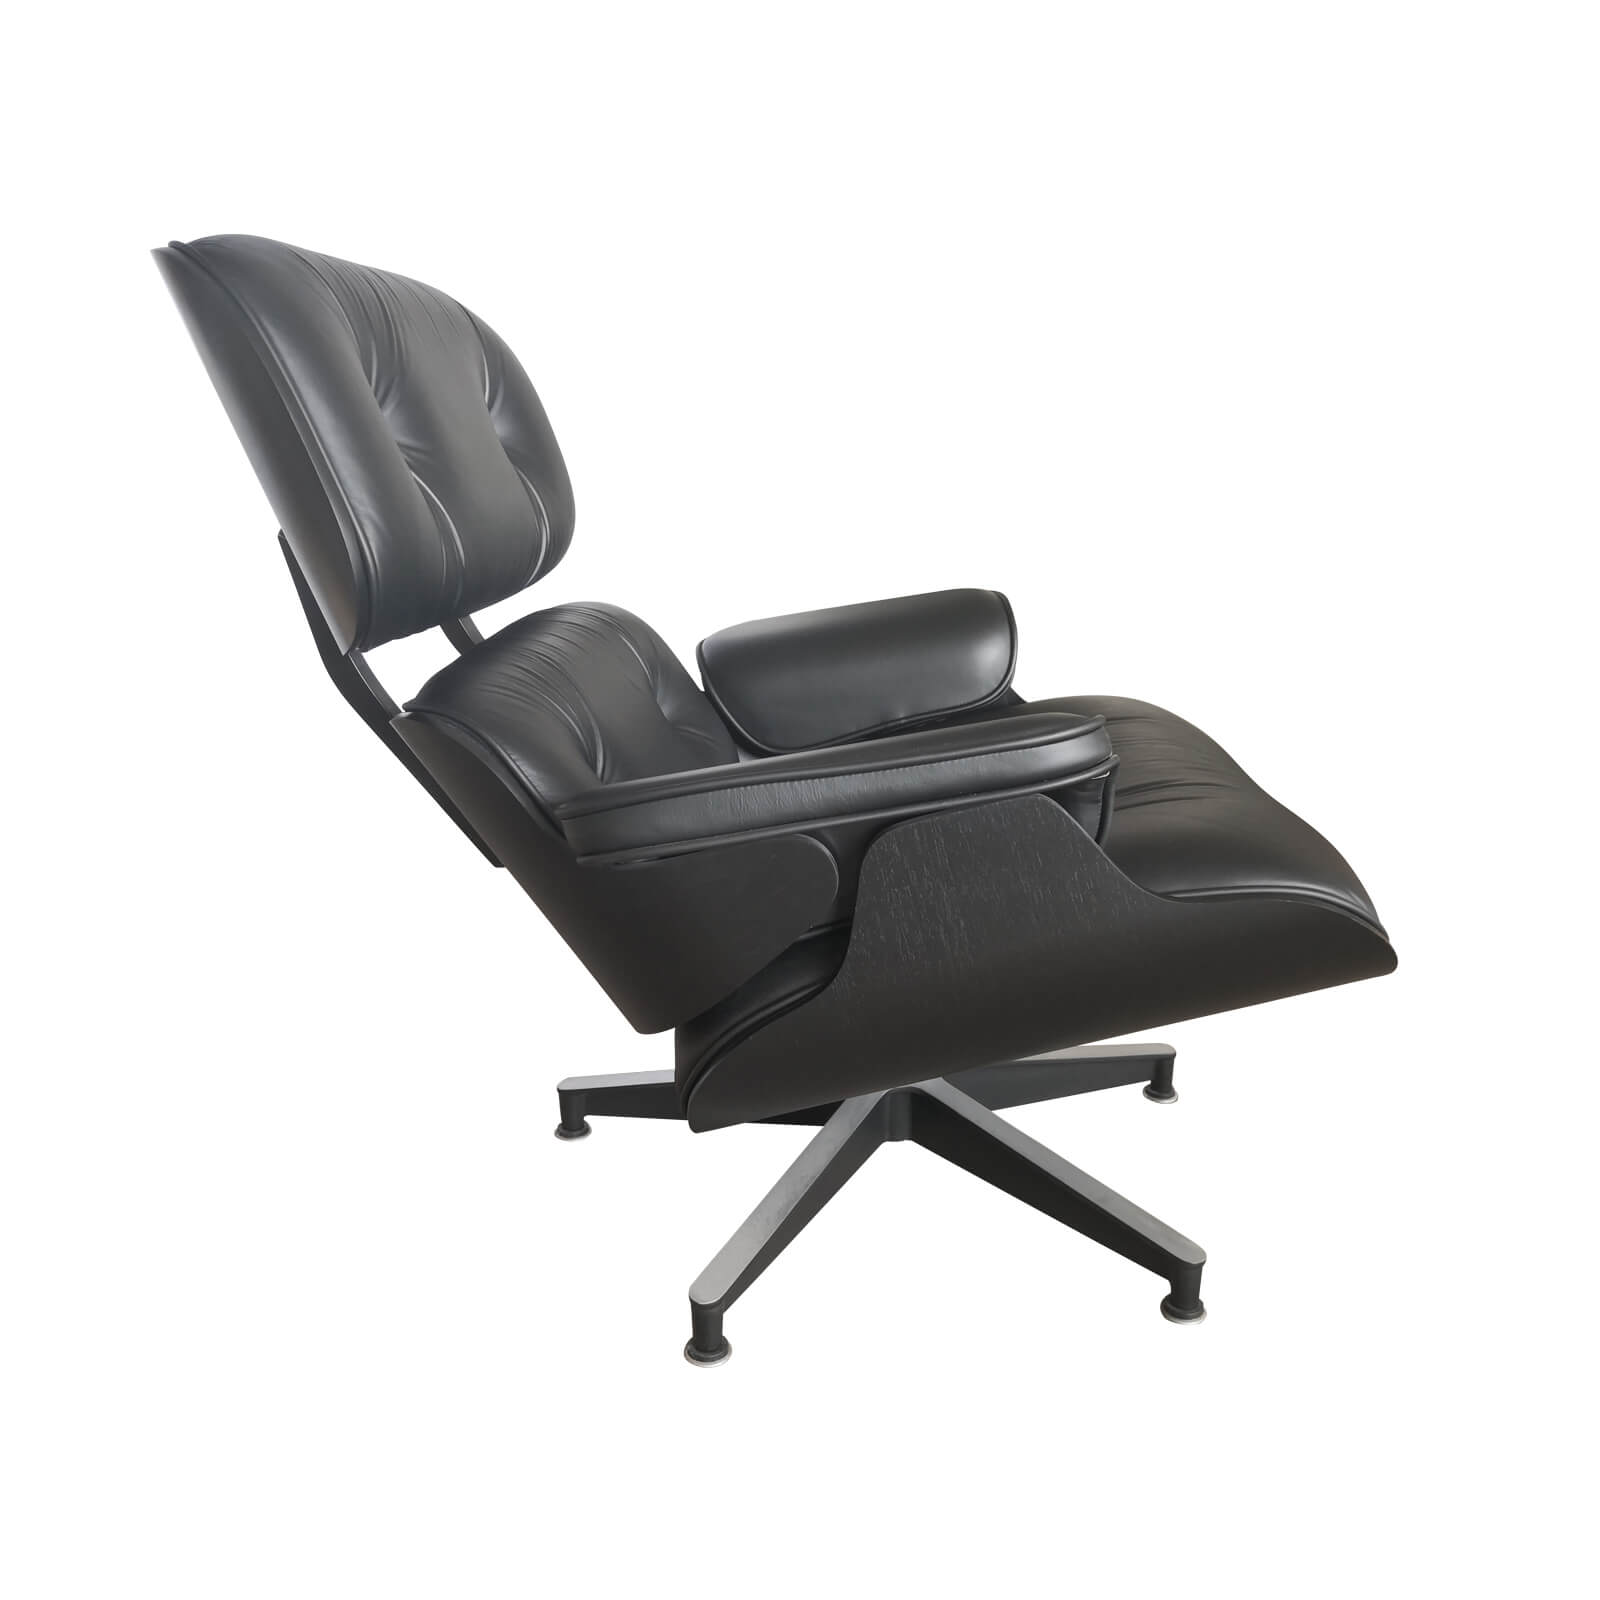 Eames Ottoman Eames Lounge Chair Ottoman Asia Limited Edition Black